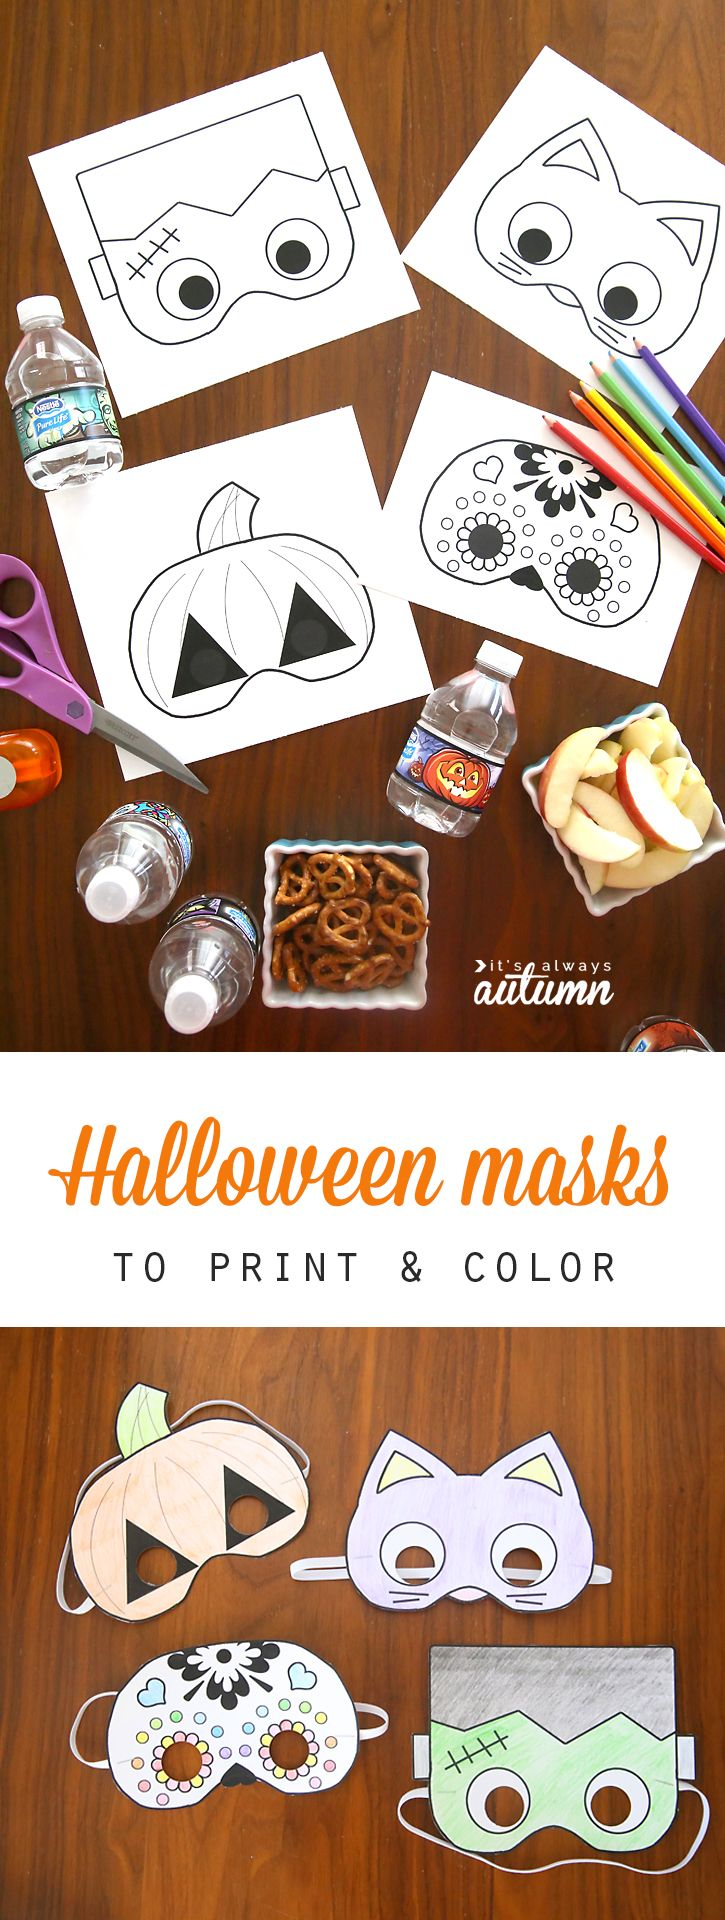 halloween masks to print and color - Halloween Crafts For The Classroom